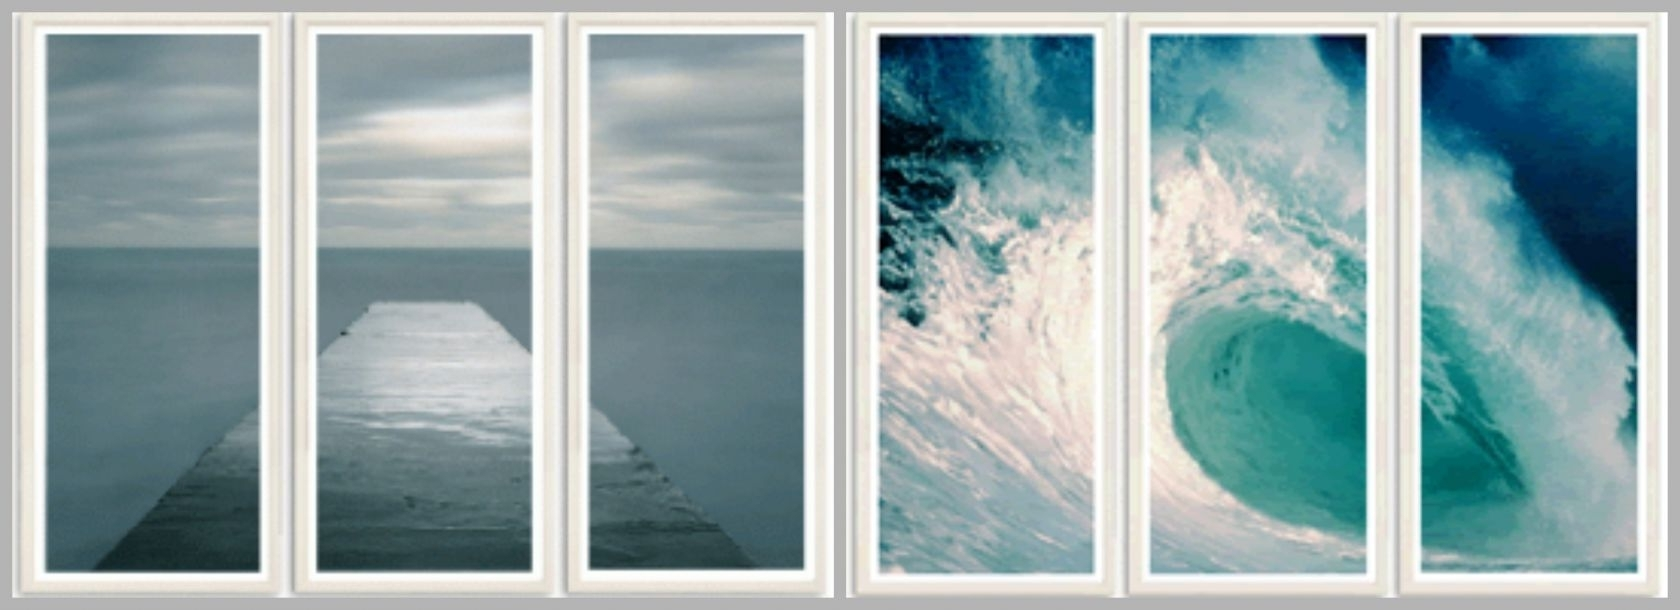 Design Tips: How To Give A Blank Wall Big Coastal Style Throughout Most Up To Date Coastal Wall Art (Gallery 13 of 15)